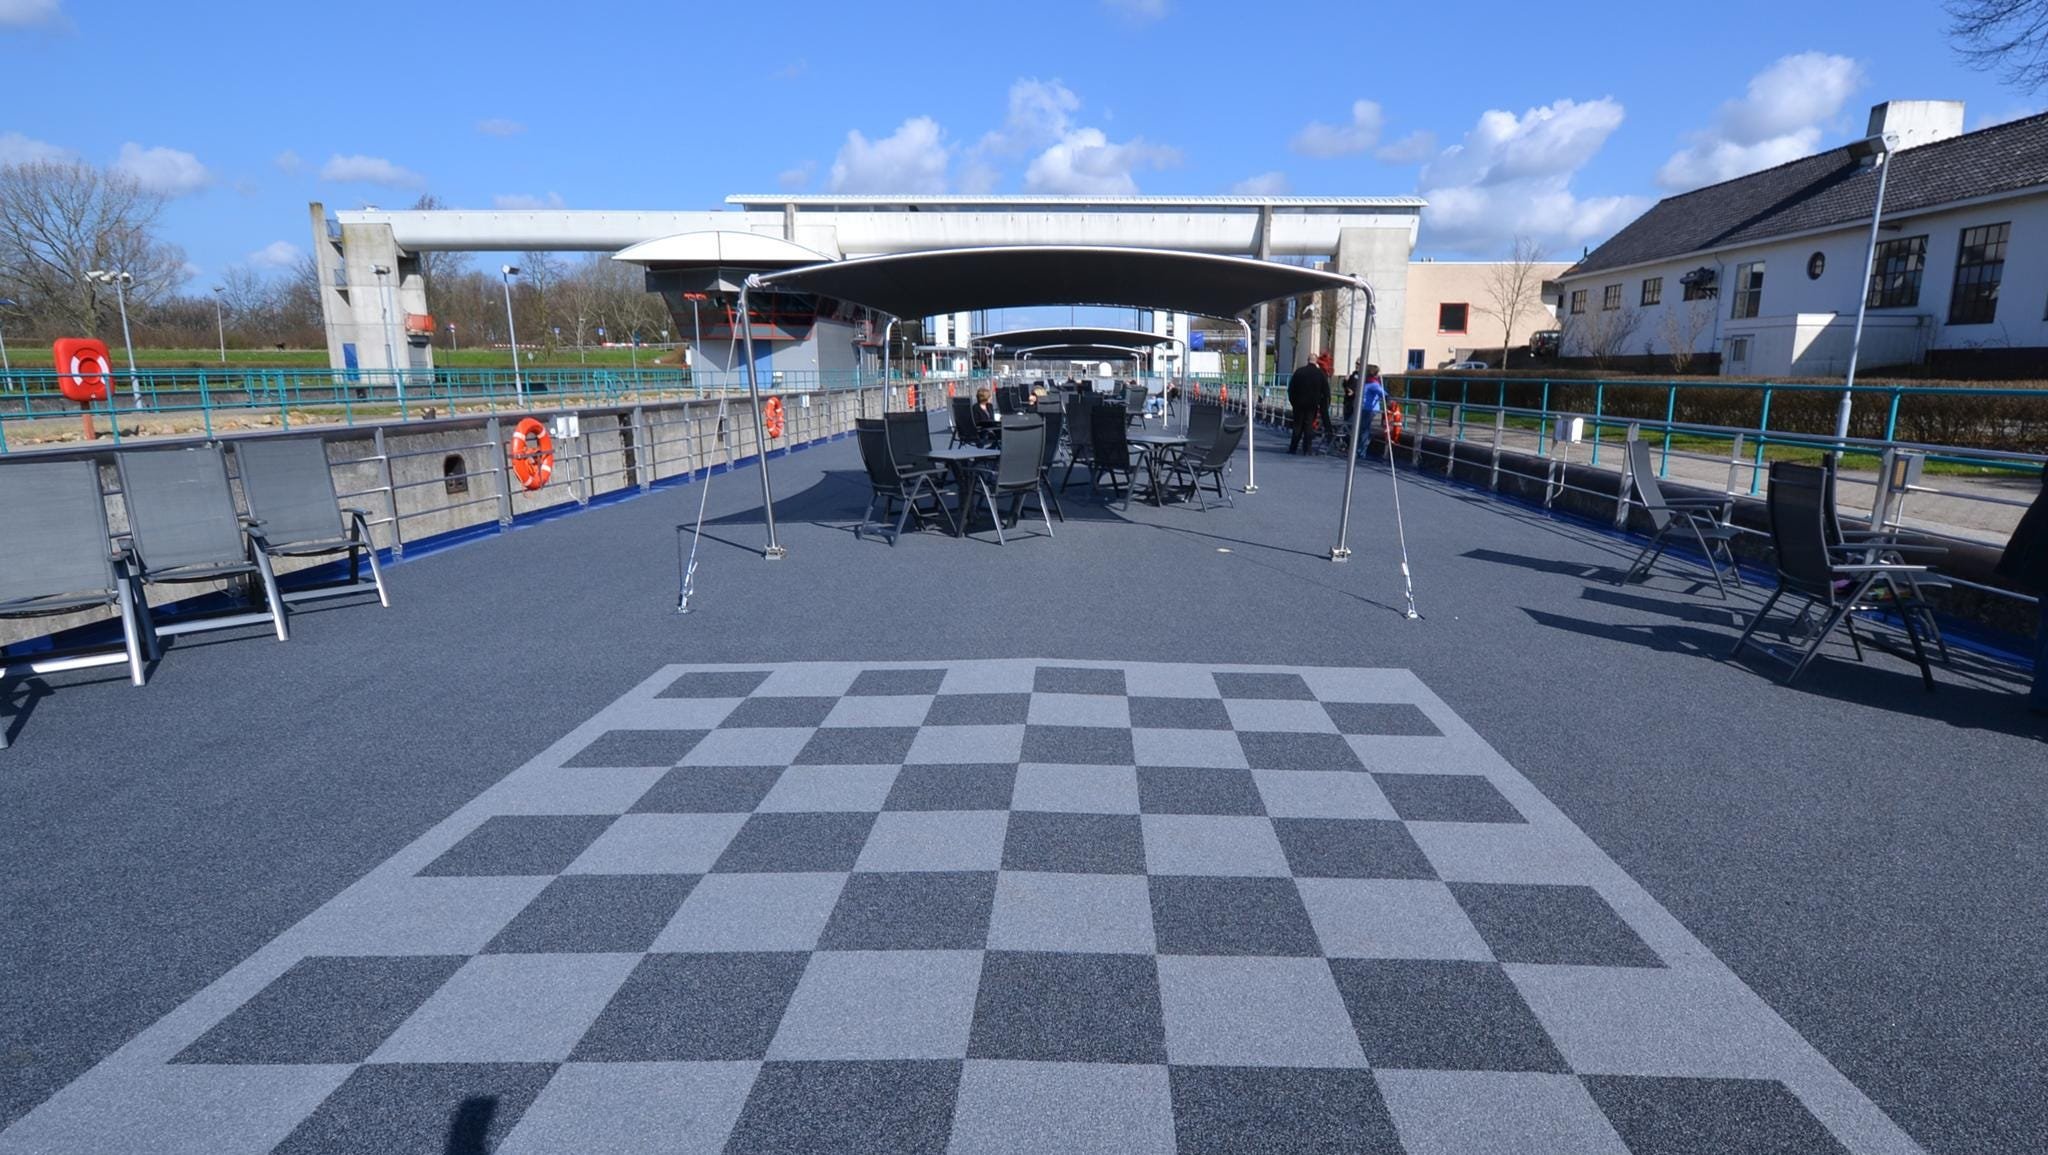 Also on the roof-top deck is an over-sized chess board.